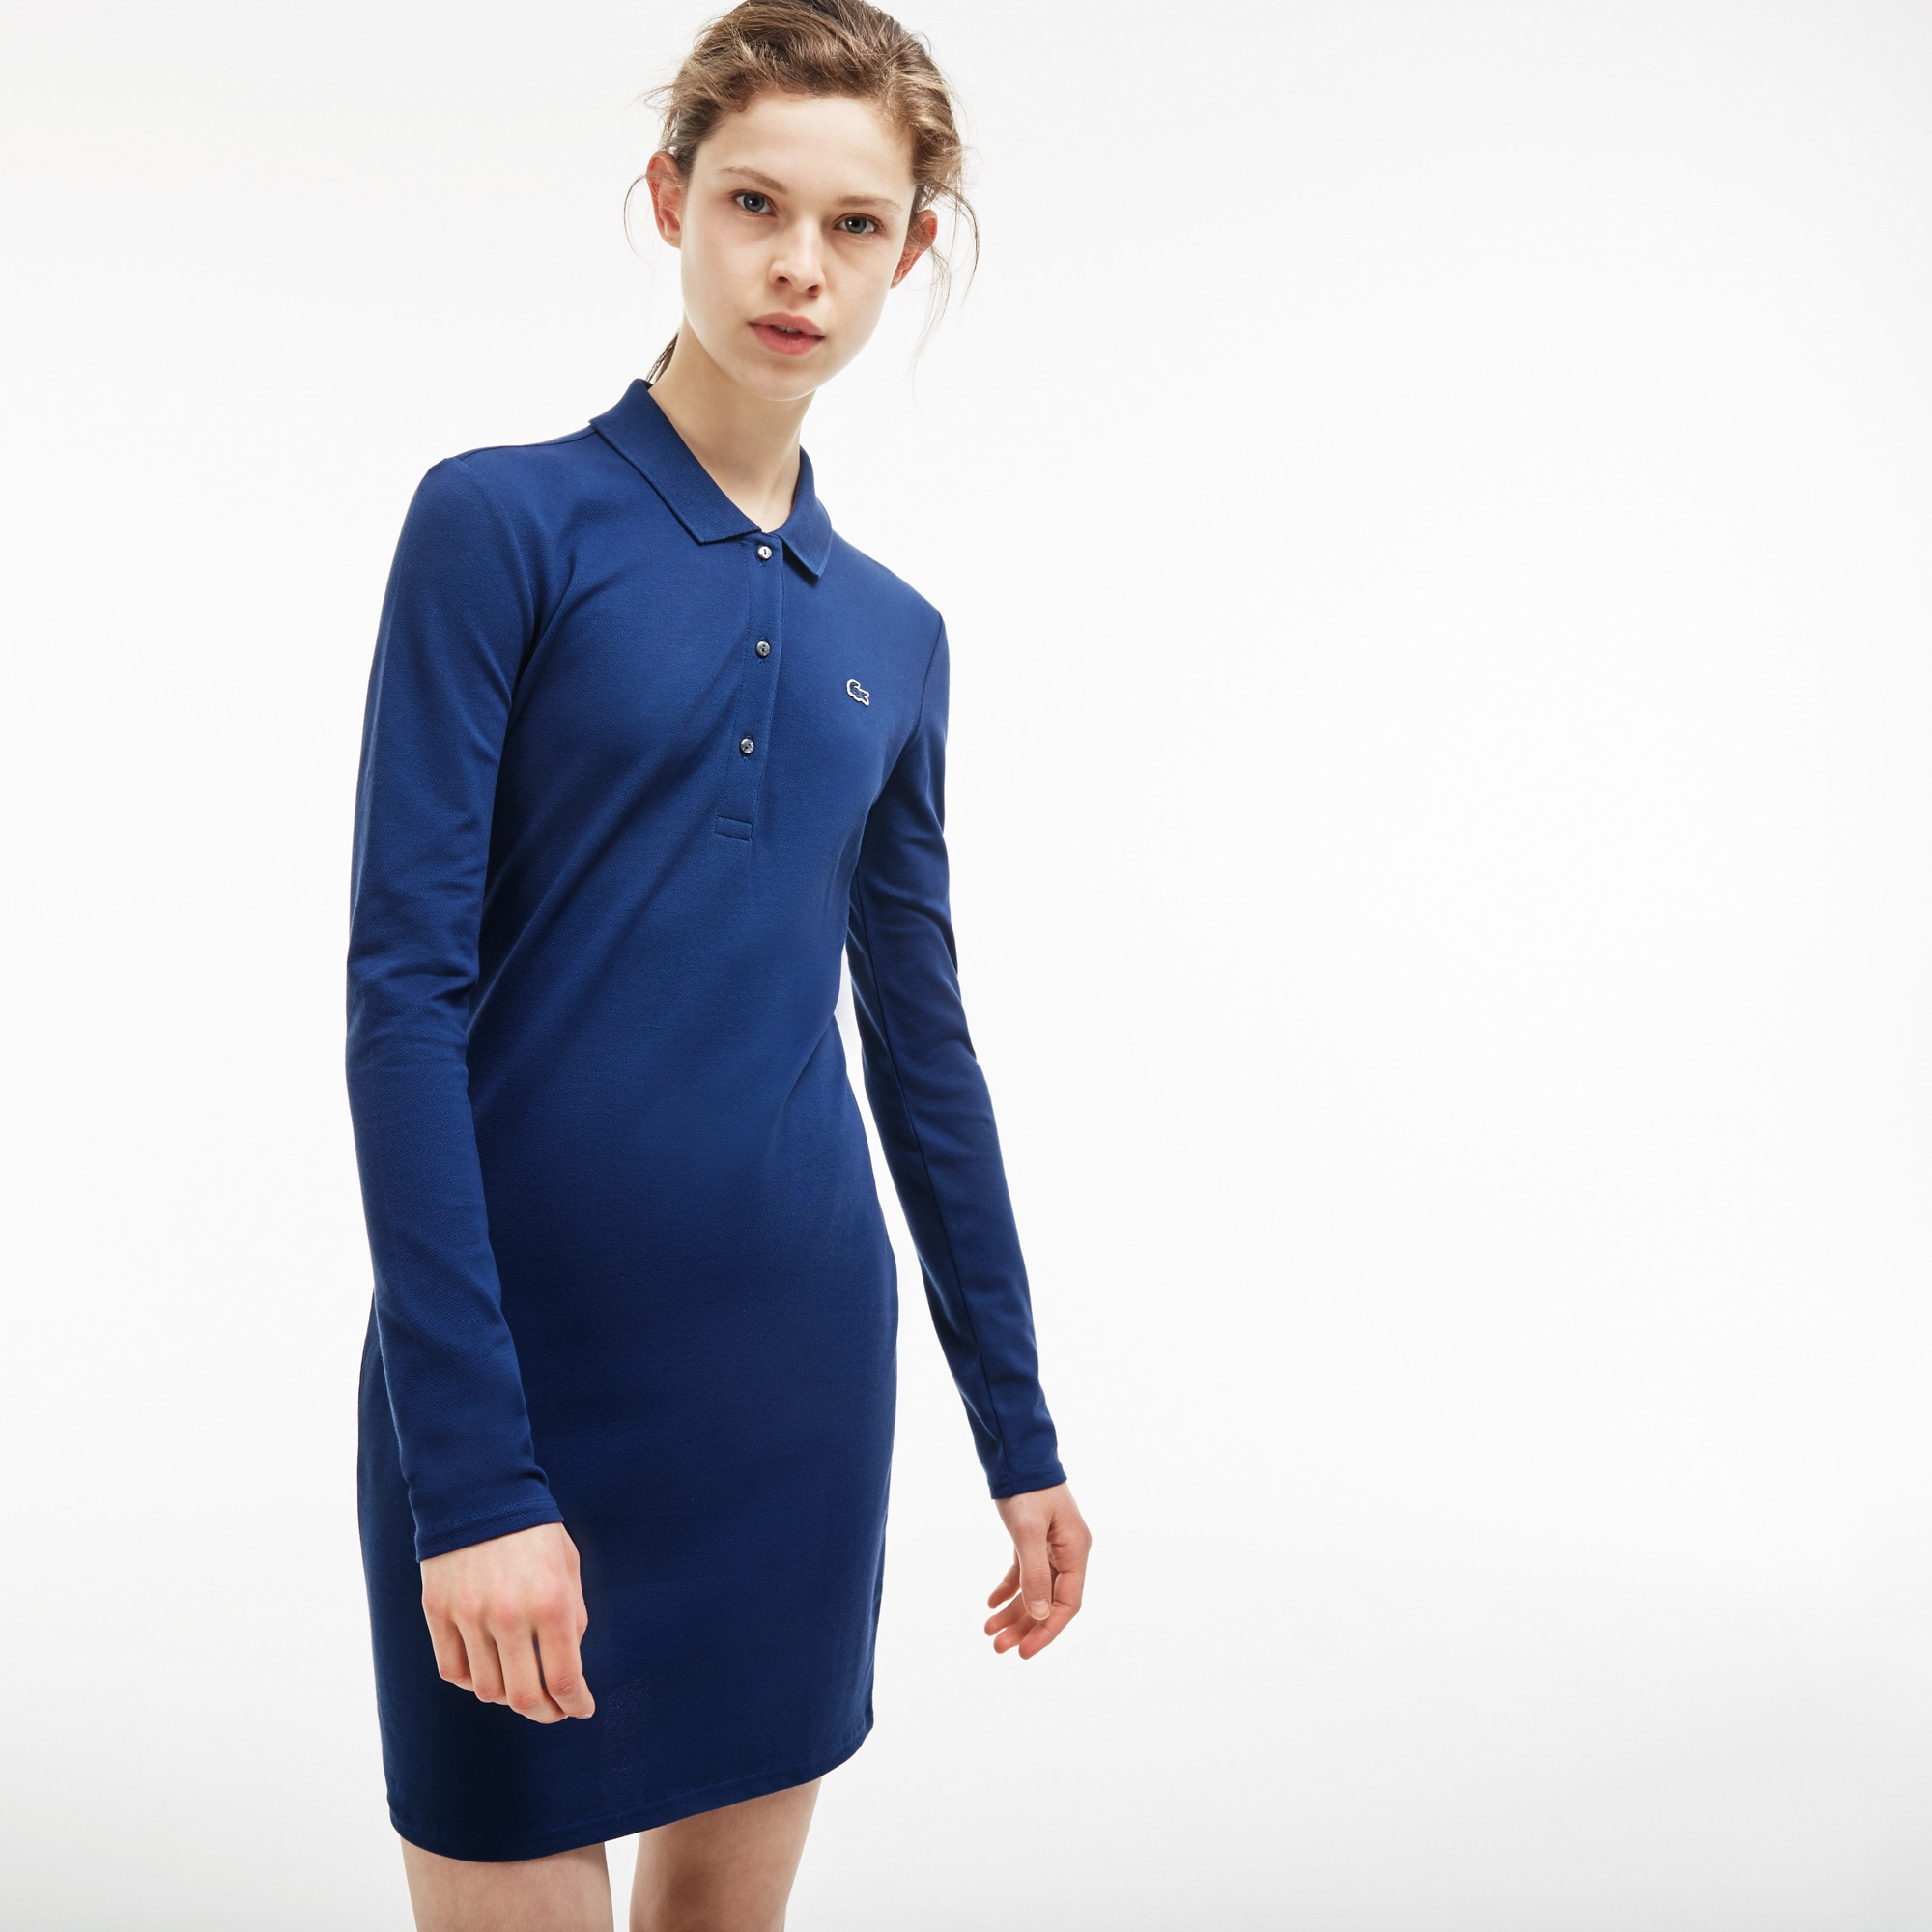 Women's Lacoste LIVE Slim Fit Stretch Piqué Polo Dress